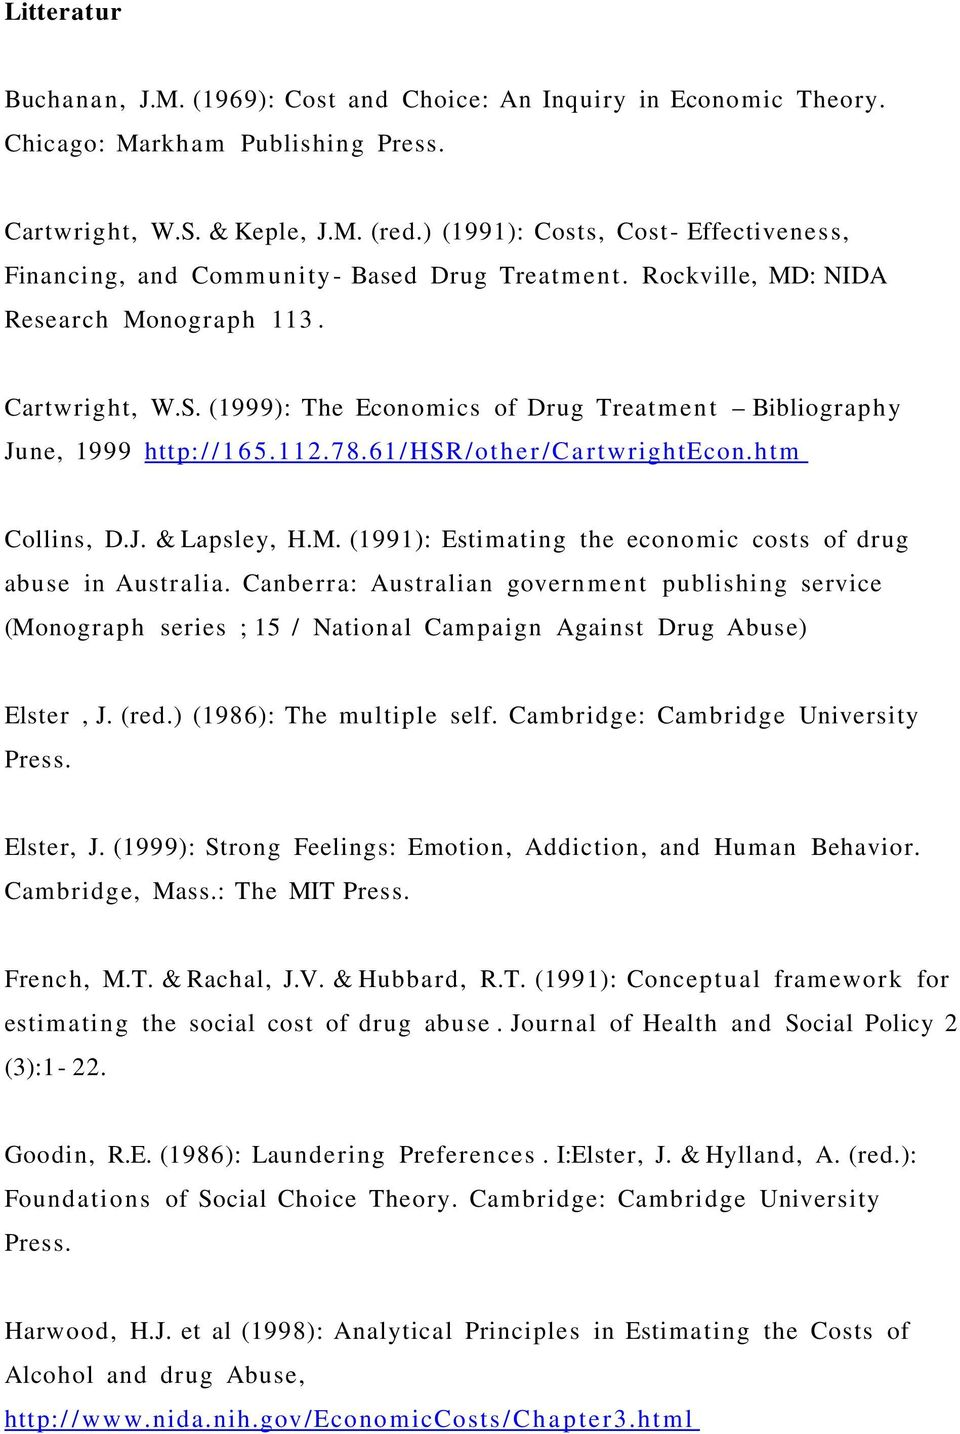 (1999): The Economics of Drug Treat m en t Bibliograp h y June, 1999 http:/ /1 65.112.78.61/HSR/other /Ca rtwrightecon.htm Collins, D.J. & Lapsley, H.M.